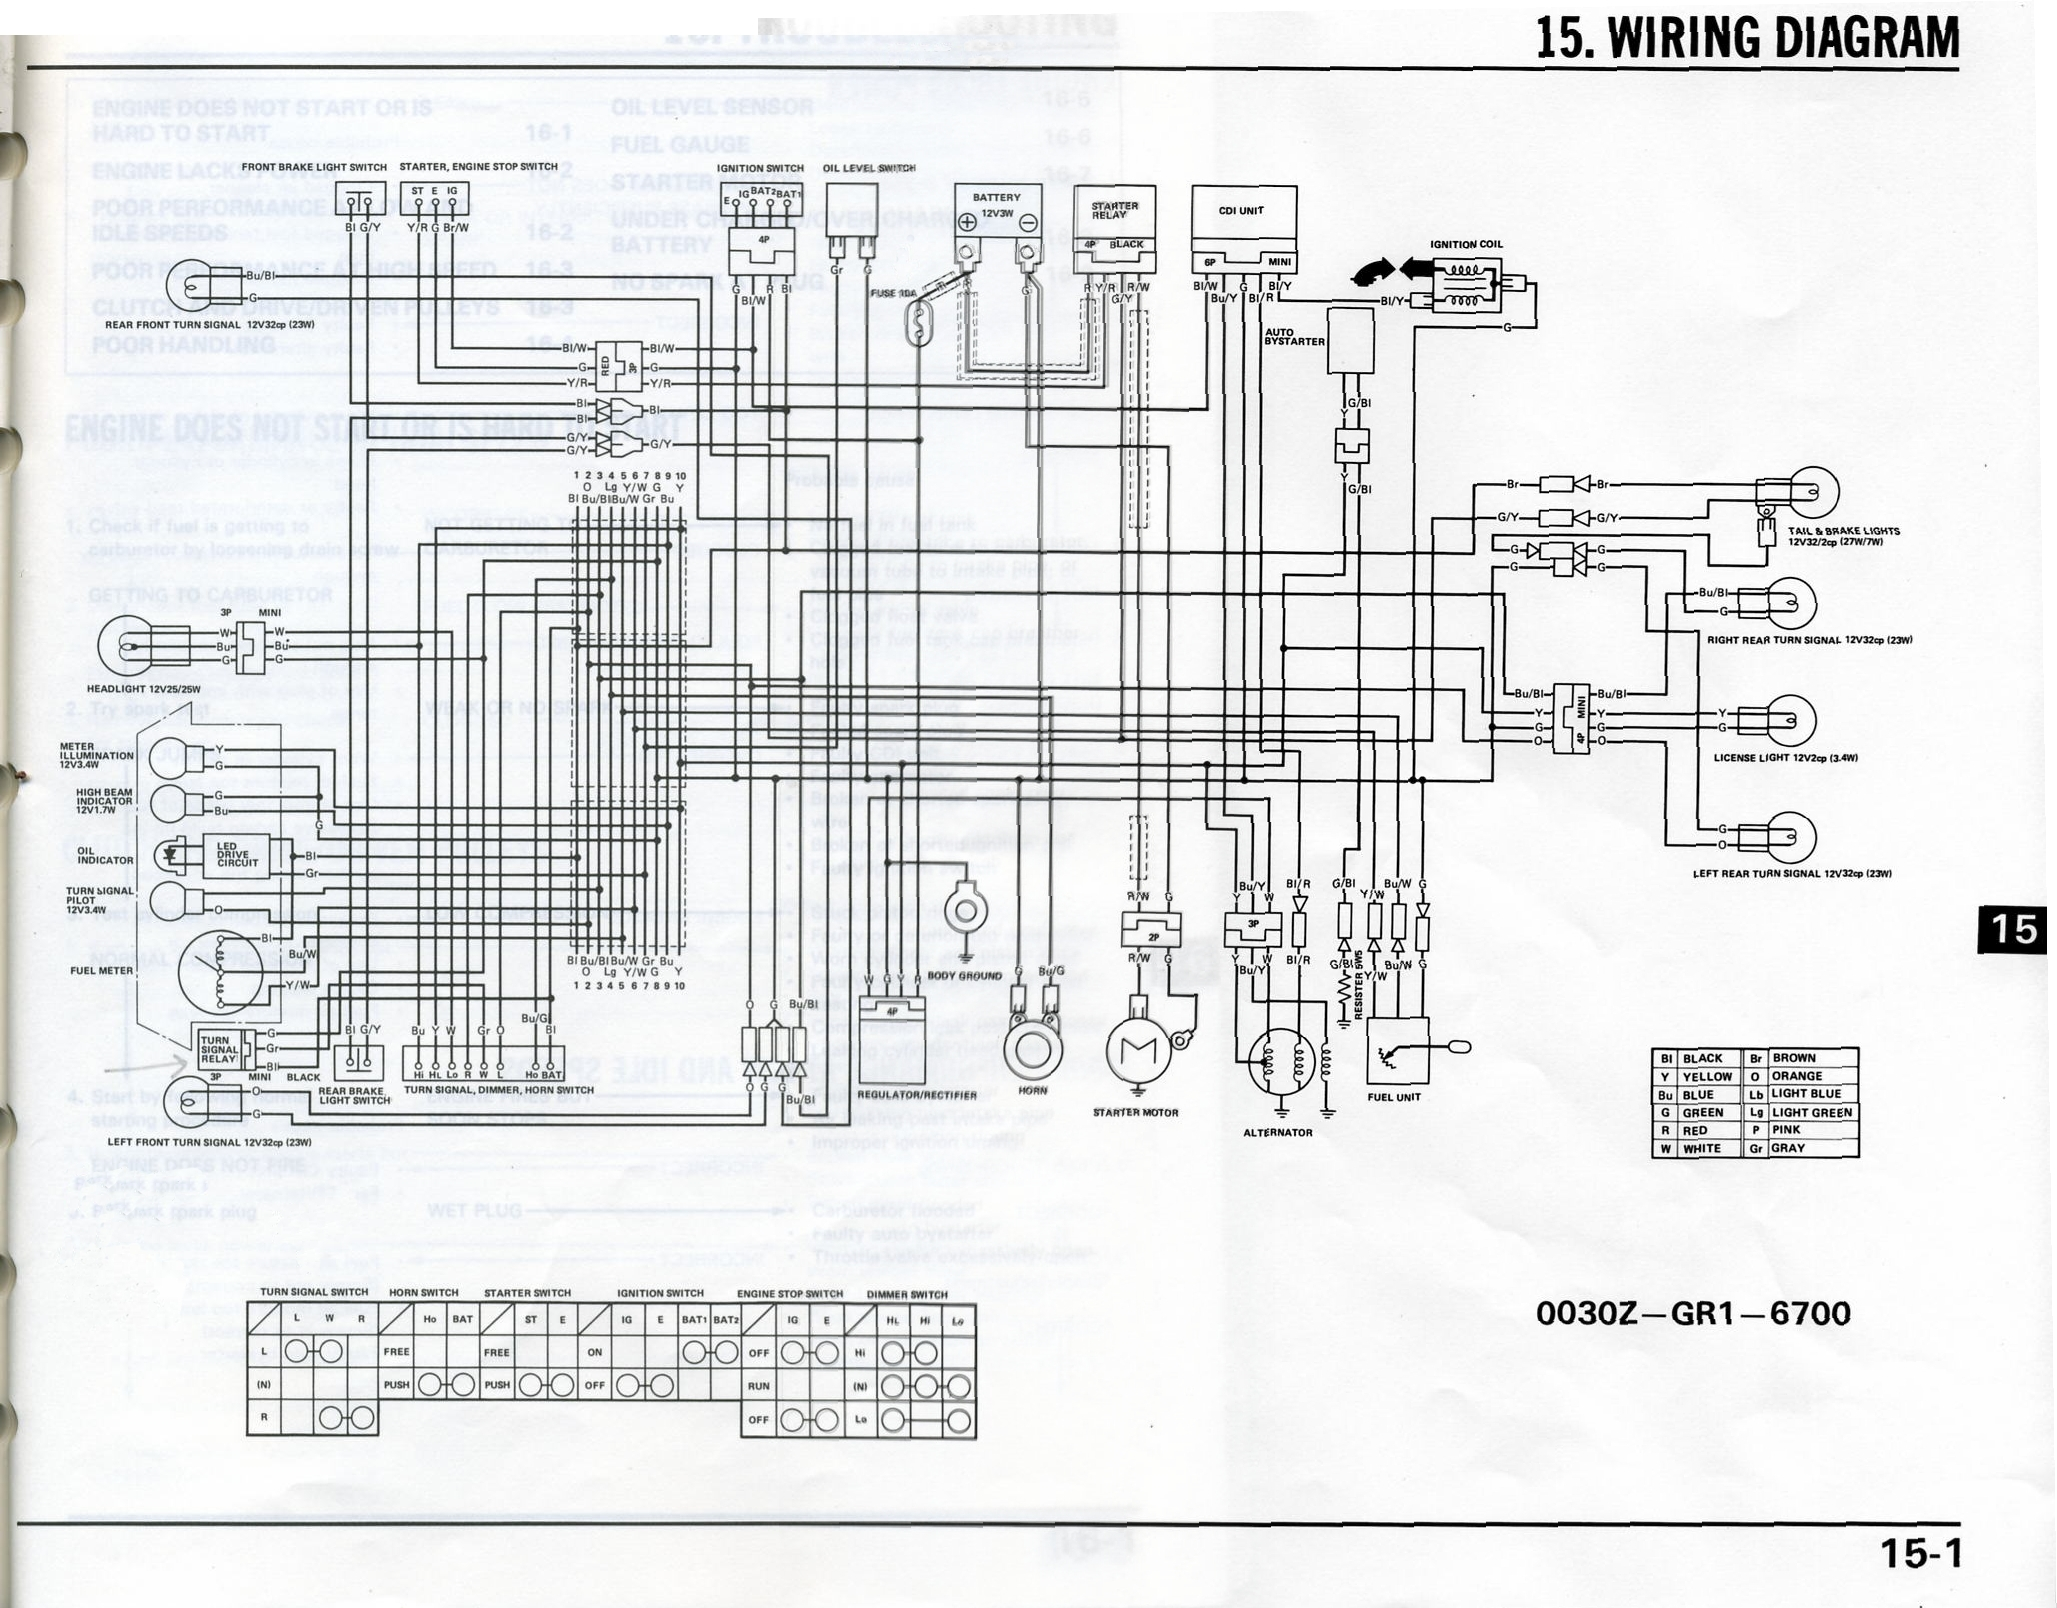 2007 Civic Si Wiring Diagram Best Wiring Library